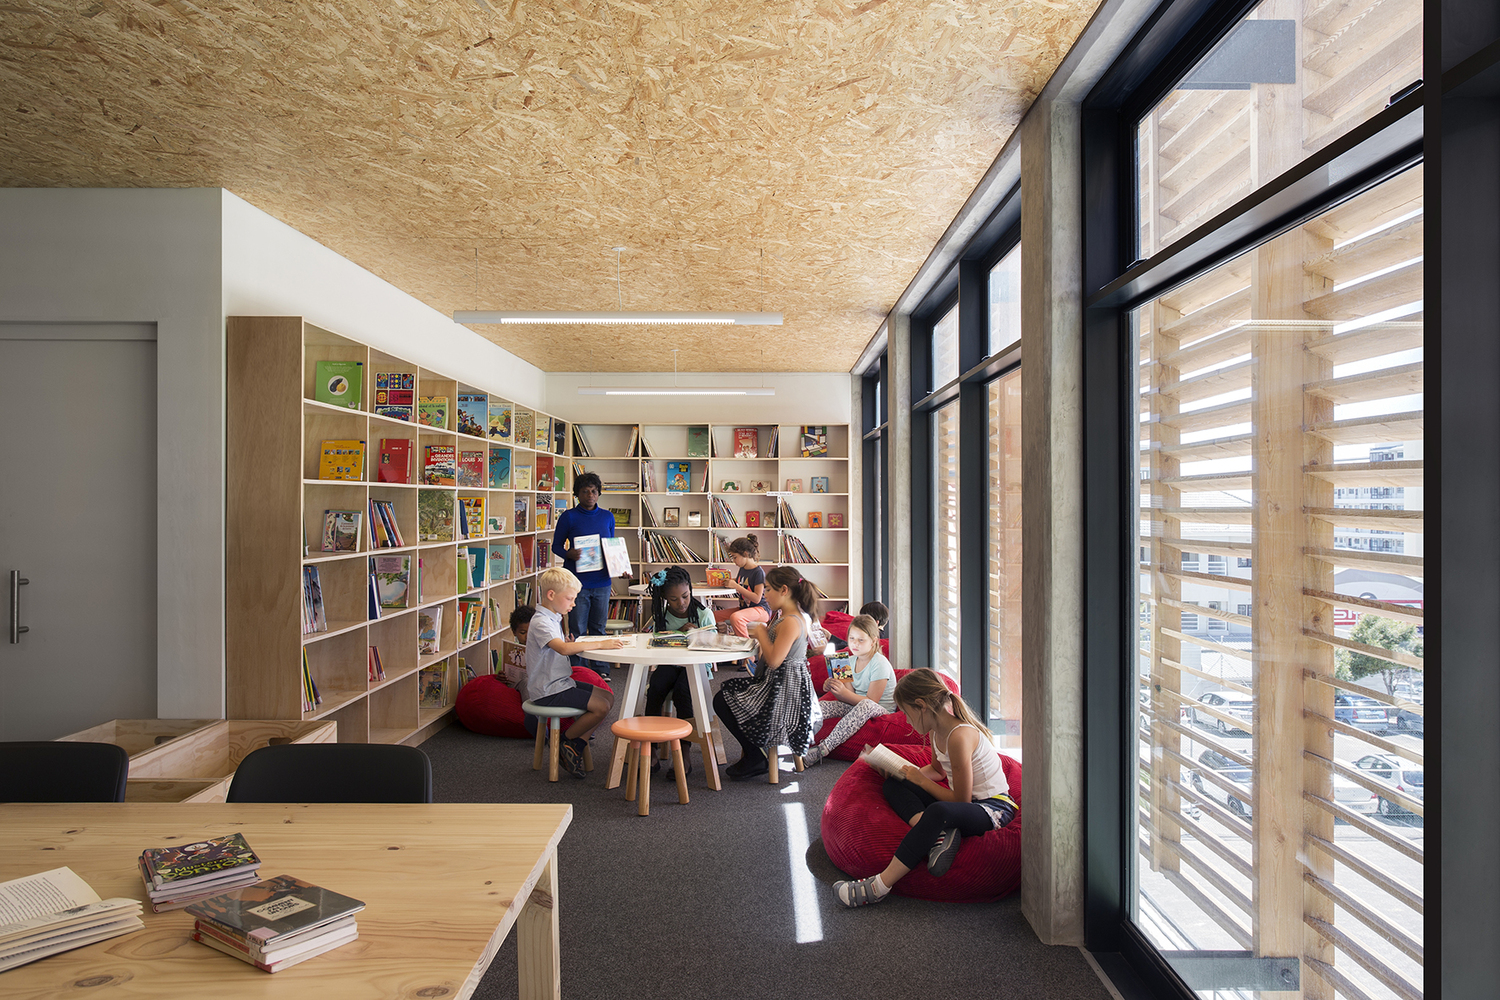 gallery of french school cape town kritzinger architects 5